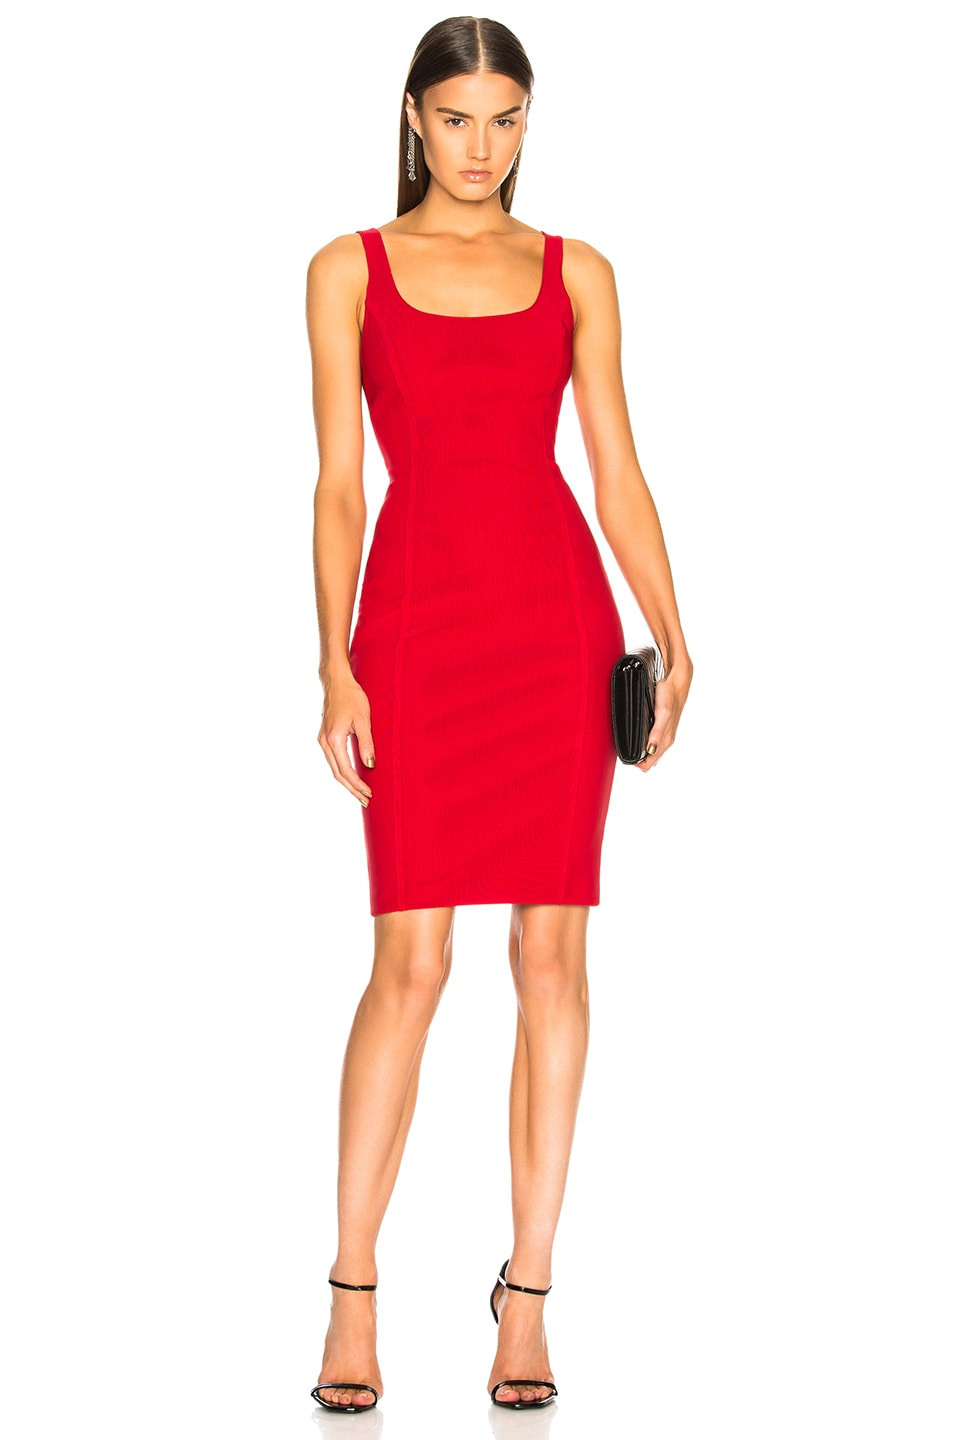 Alexander Wang Racerback Bodycon Dress in Red